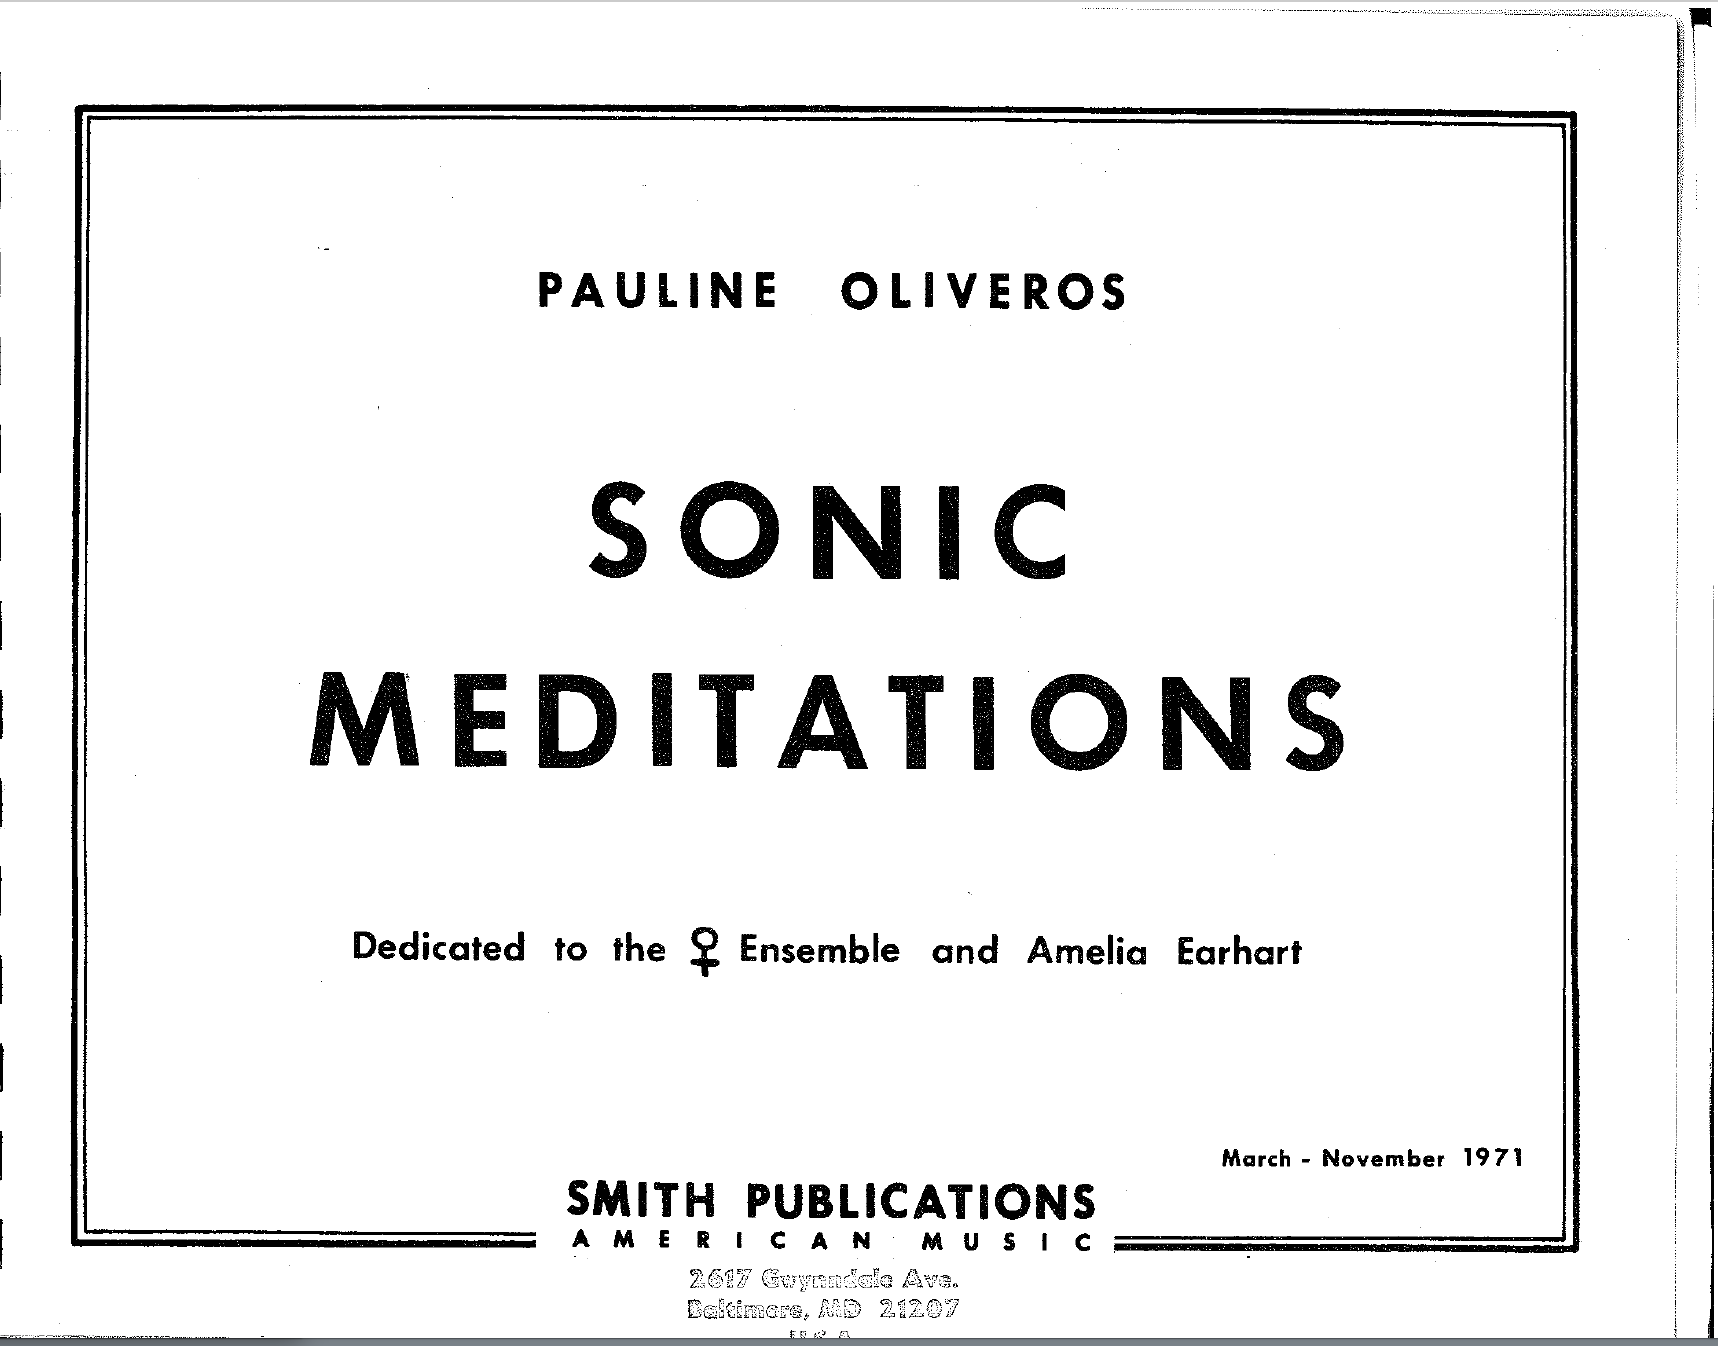 Sonic Meditations from the doyenne of Deep Listening, Pauline Oliveros.